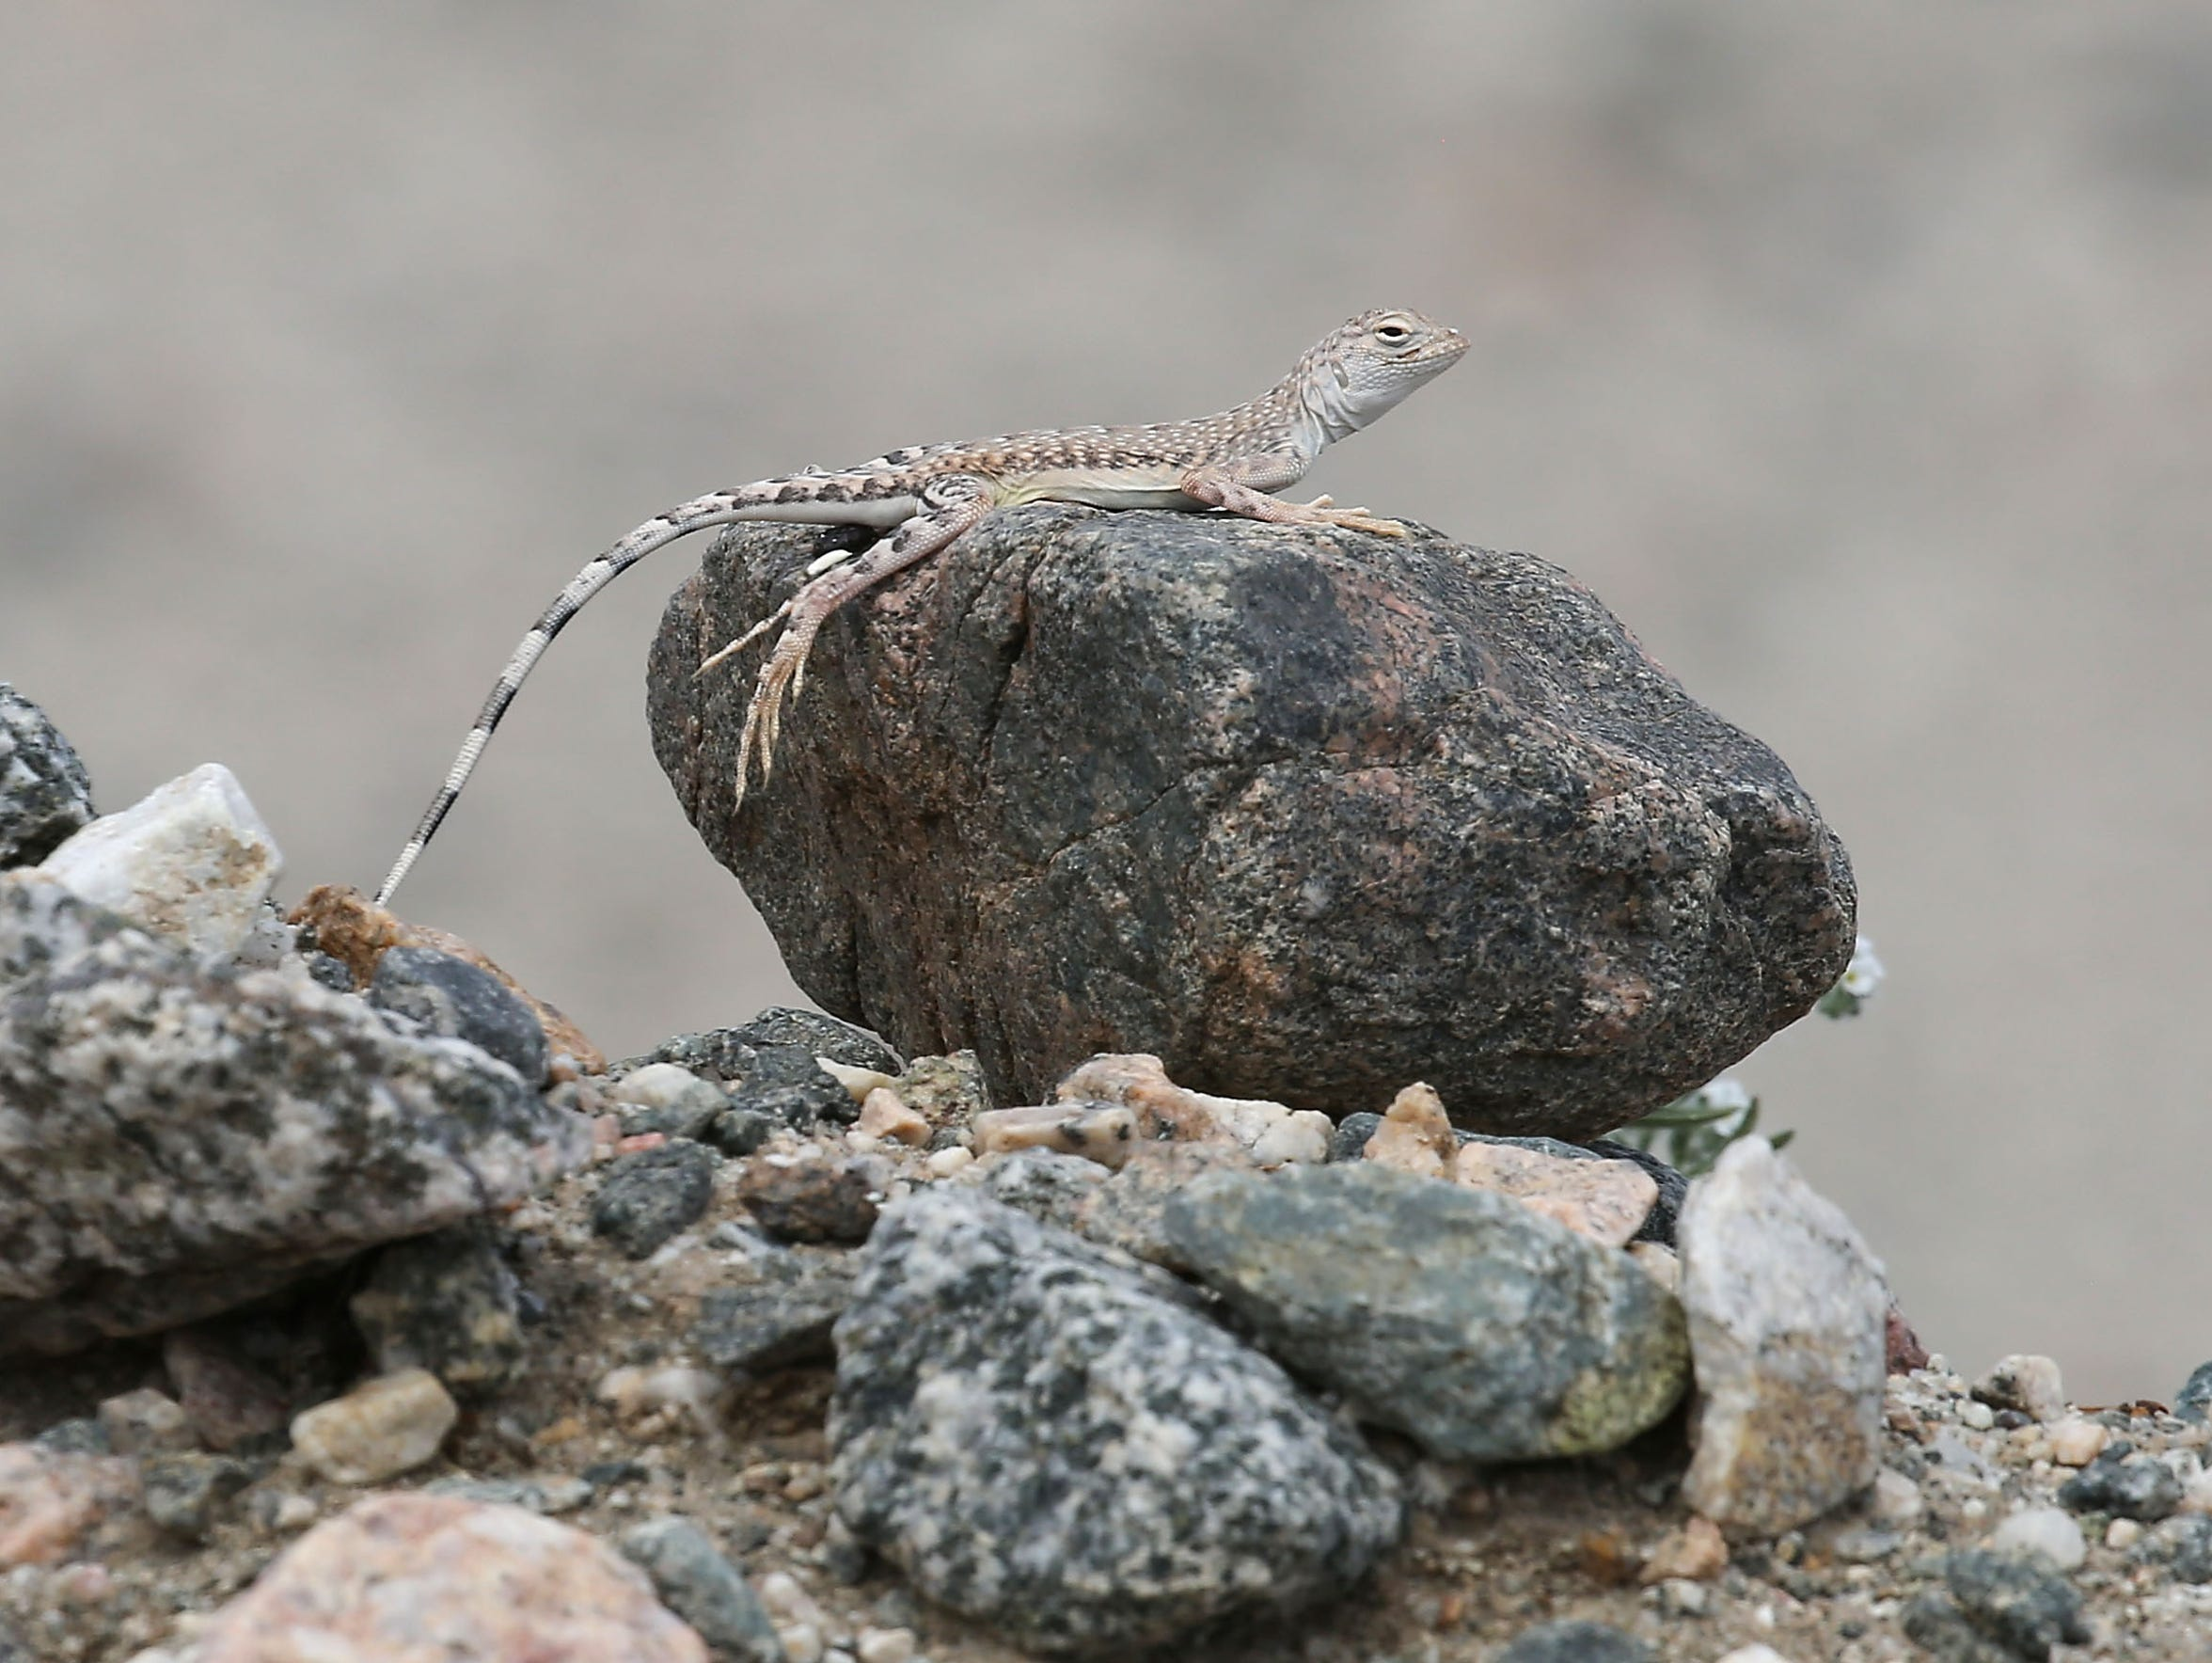 A zebra-tailed lizard in the Mojave Desert.